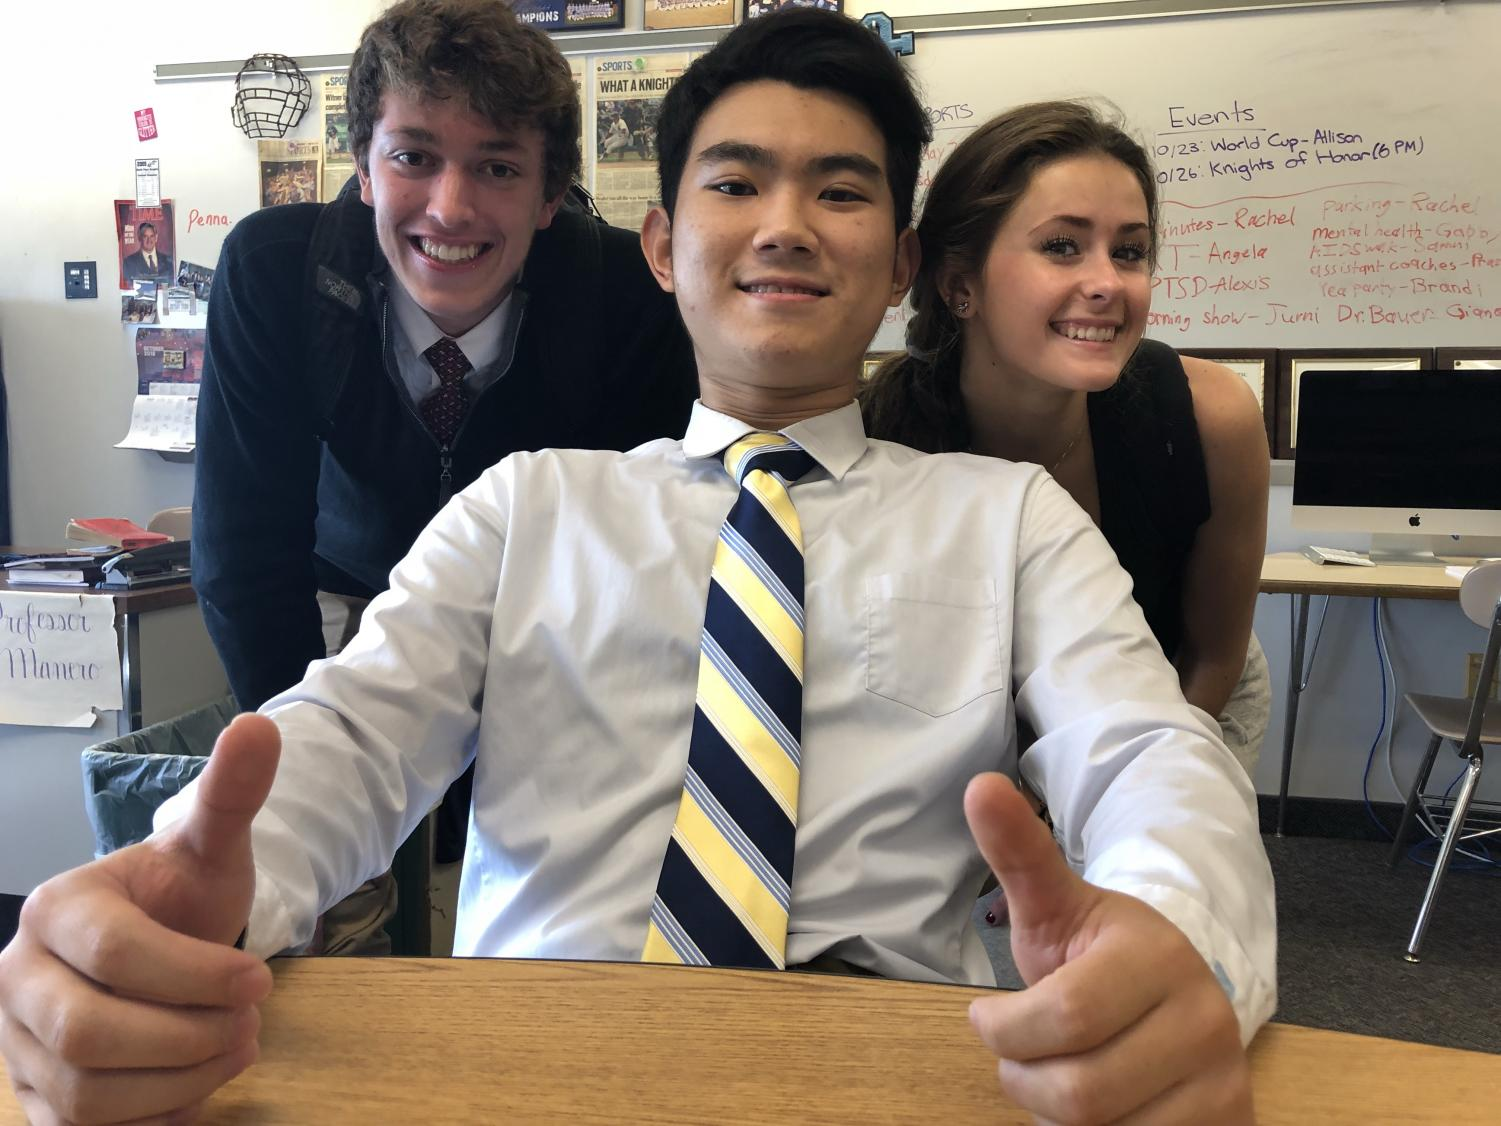 Min Shin, a senior at NPHS, takes time from his academics to pose for a picture with his classmates from public speaking, Kevin Snow and Jess Warner.